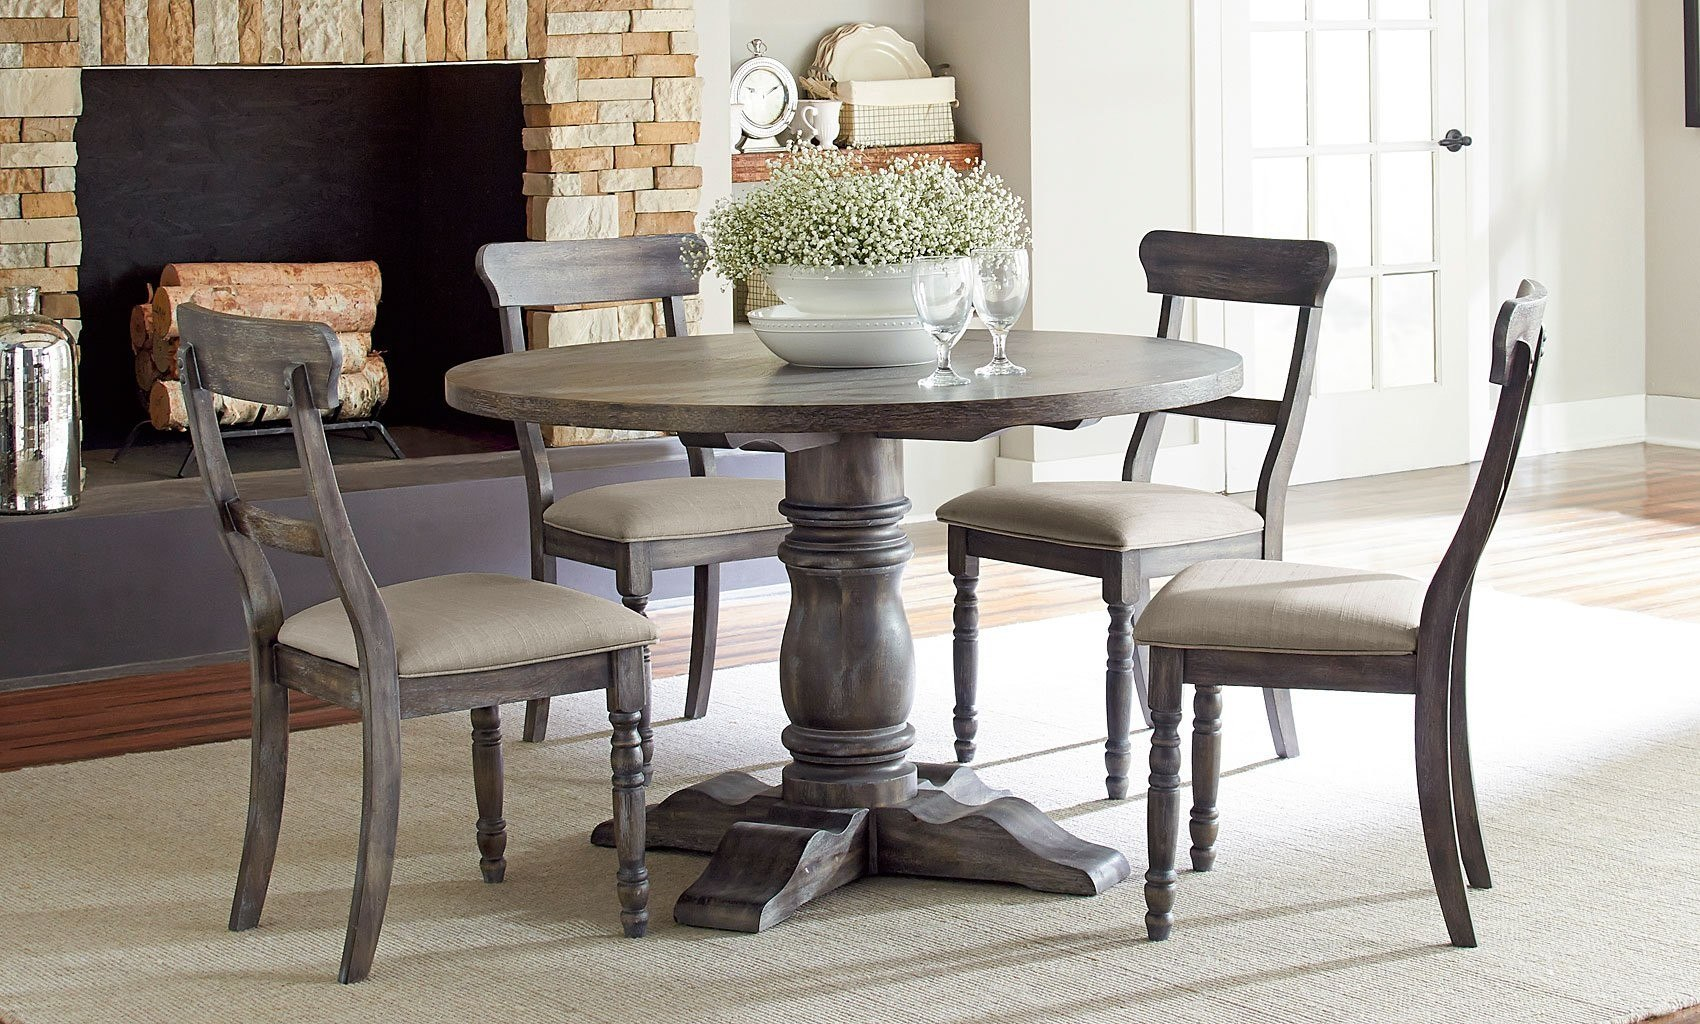 Muses Round Dining Room Set W/ Ladderback Chairs Progressive Furniture |  Furniture Cart Part 57